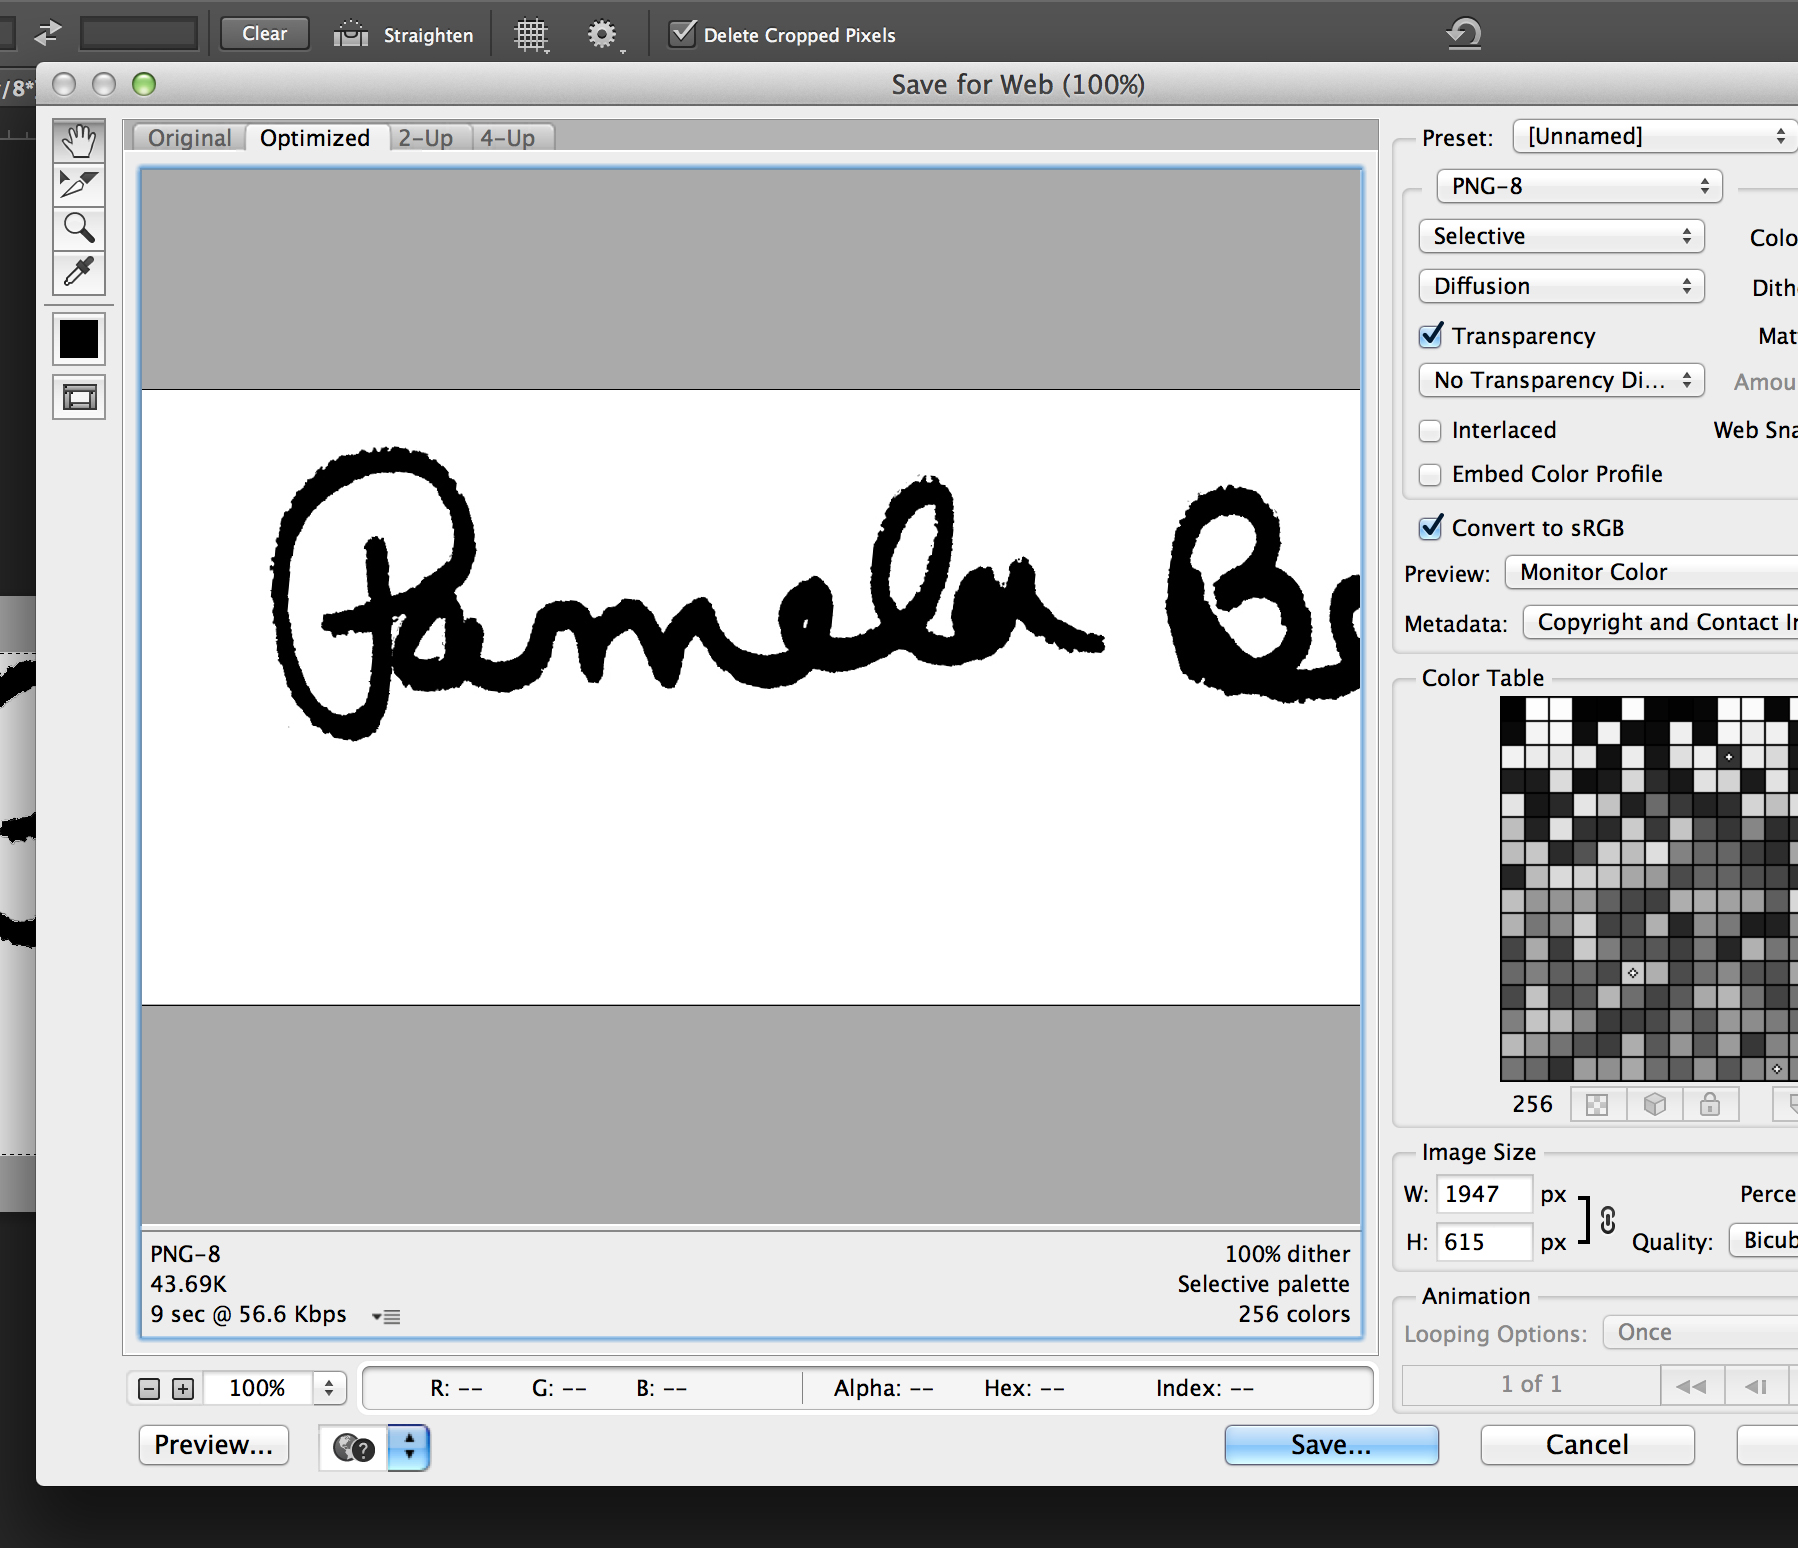 Creating a Signature Watermark with Adobe Photoshop CC